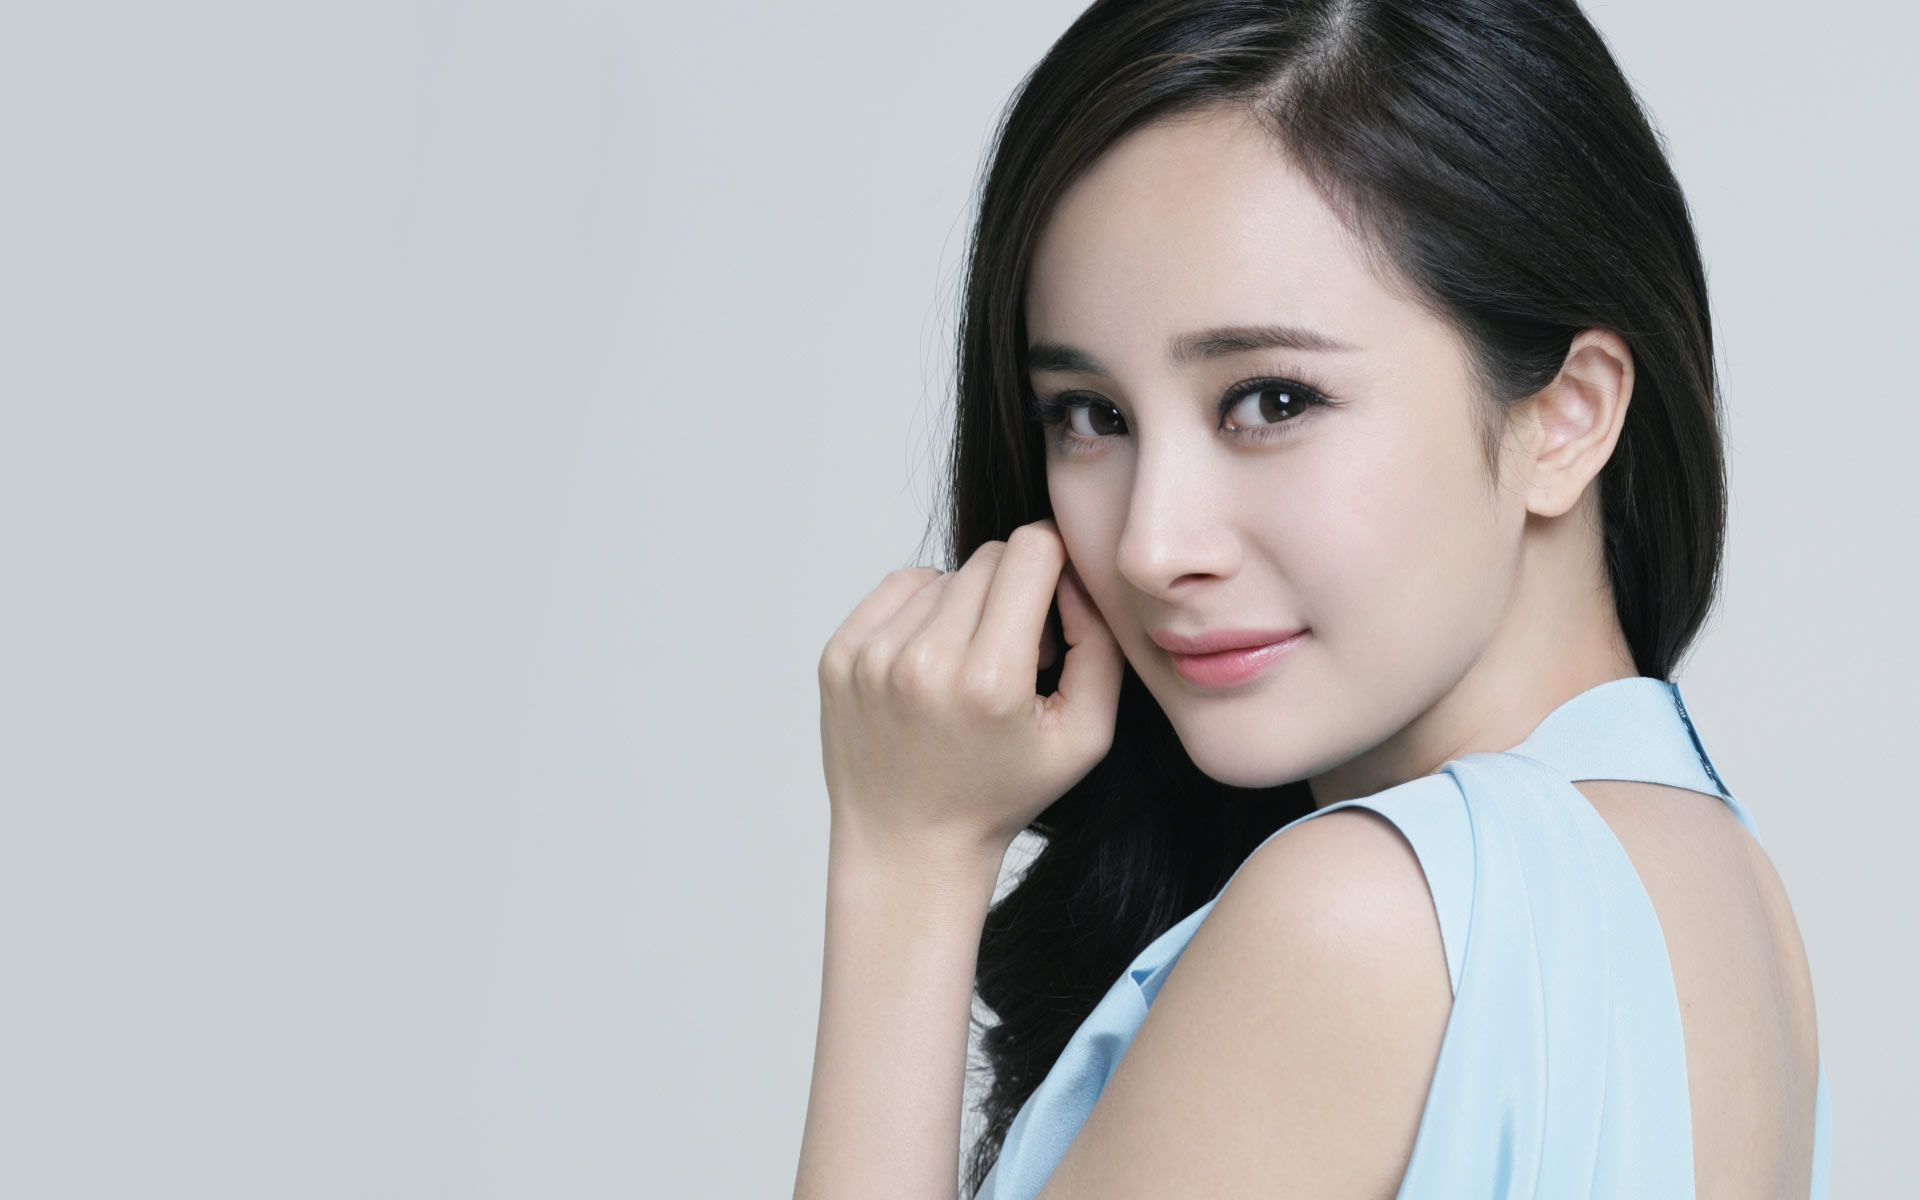 Yang Mi on being the Femme Fatale in L.O.R.D